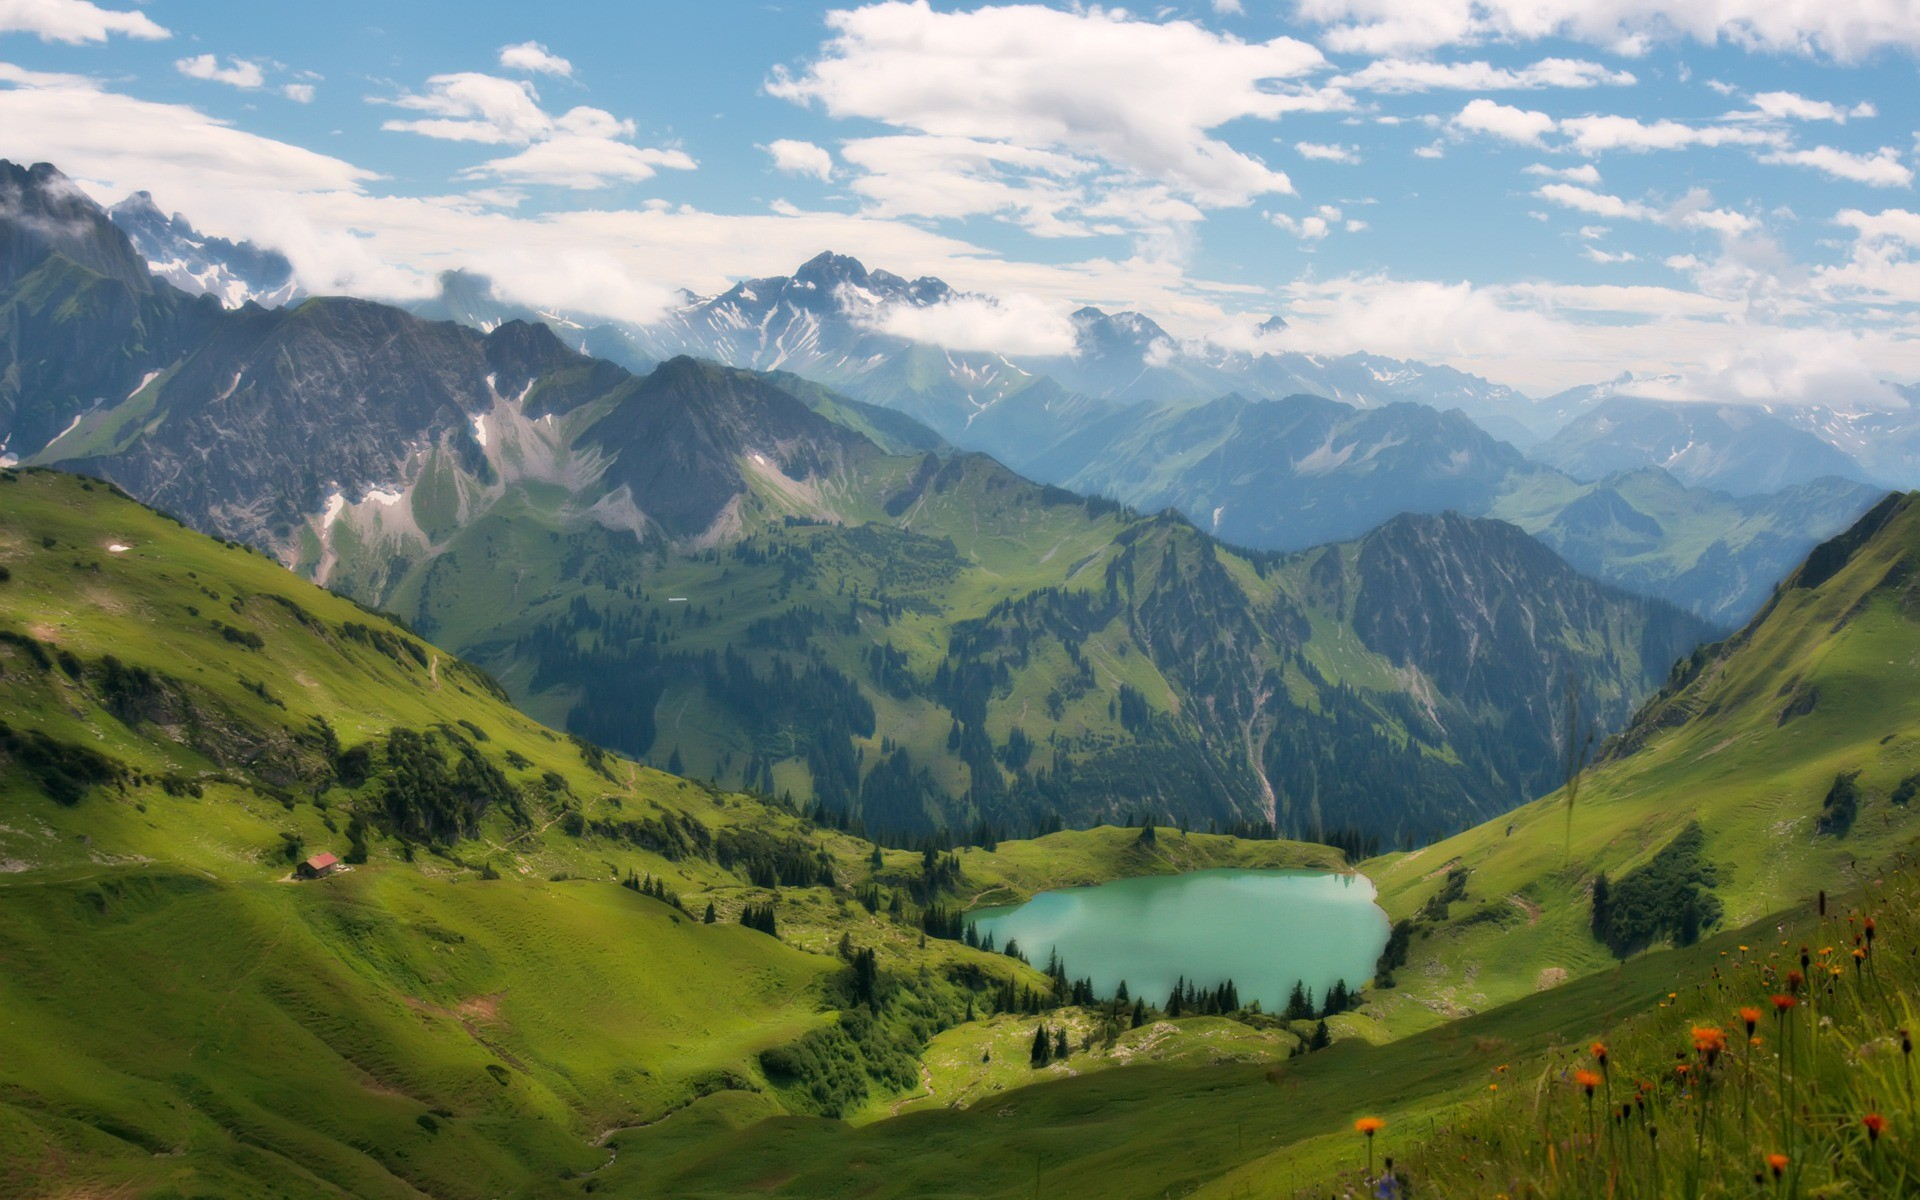 Res: 1920x1200, Lake in the Alps Wallpaper Landscape Nature Wallpapers